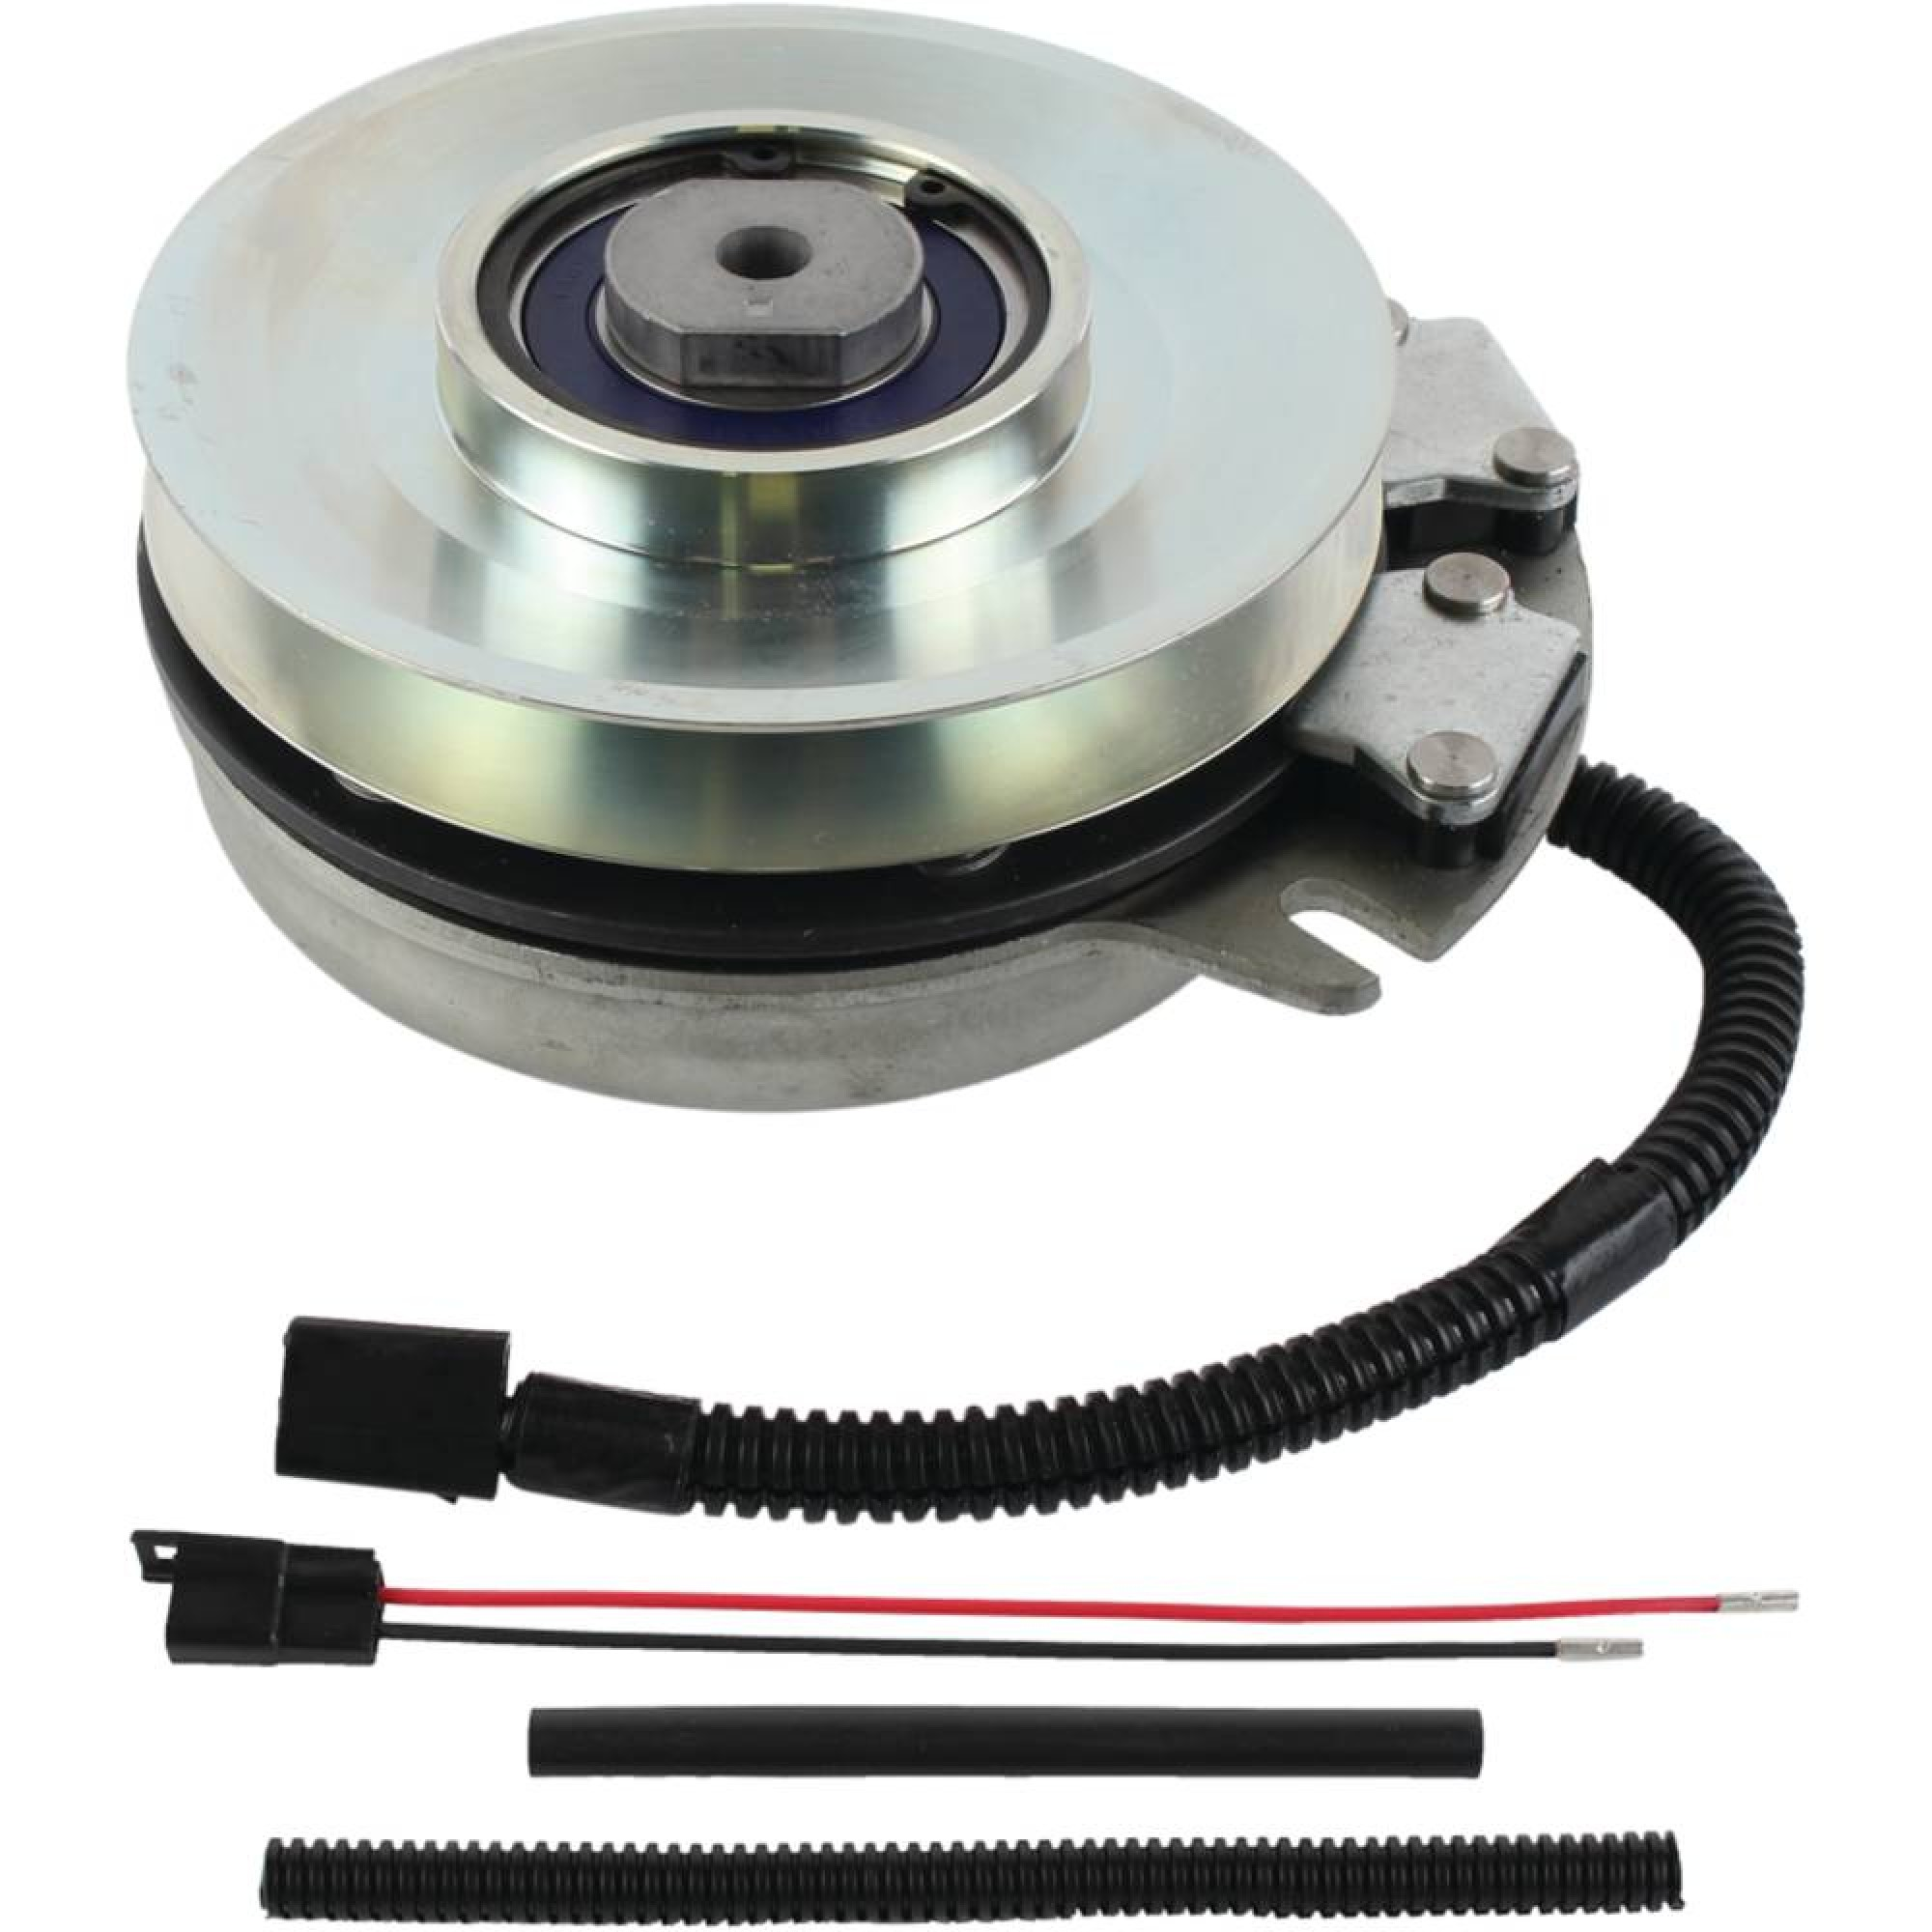 hight resolution of xtreme replacement clutch for wright stander 71410001 with wire harness repair kit xtreme outdoor power equipment